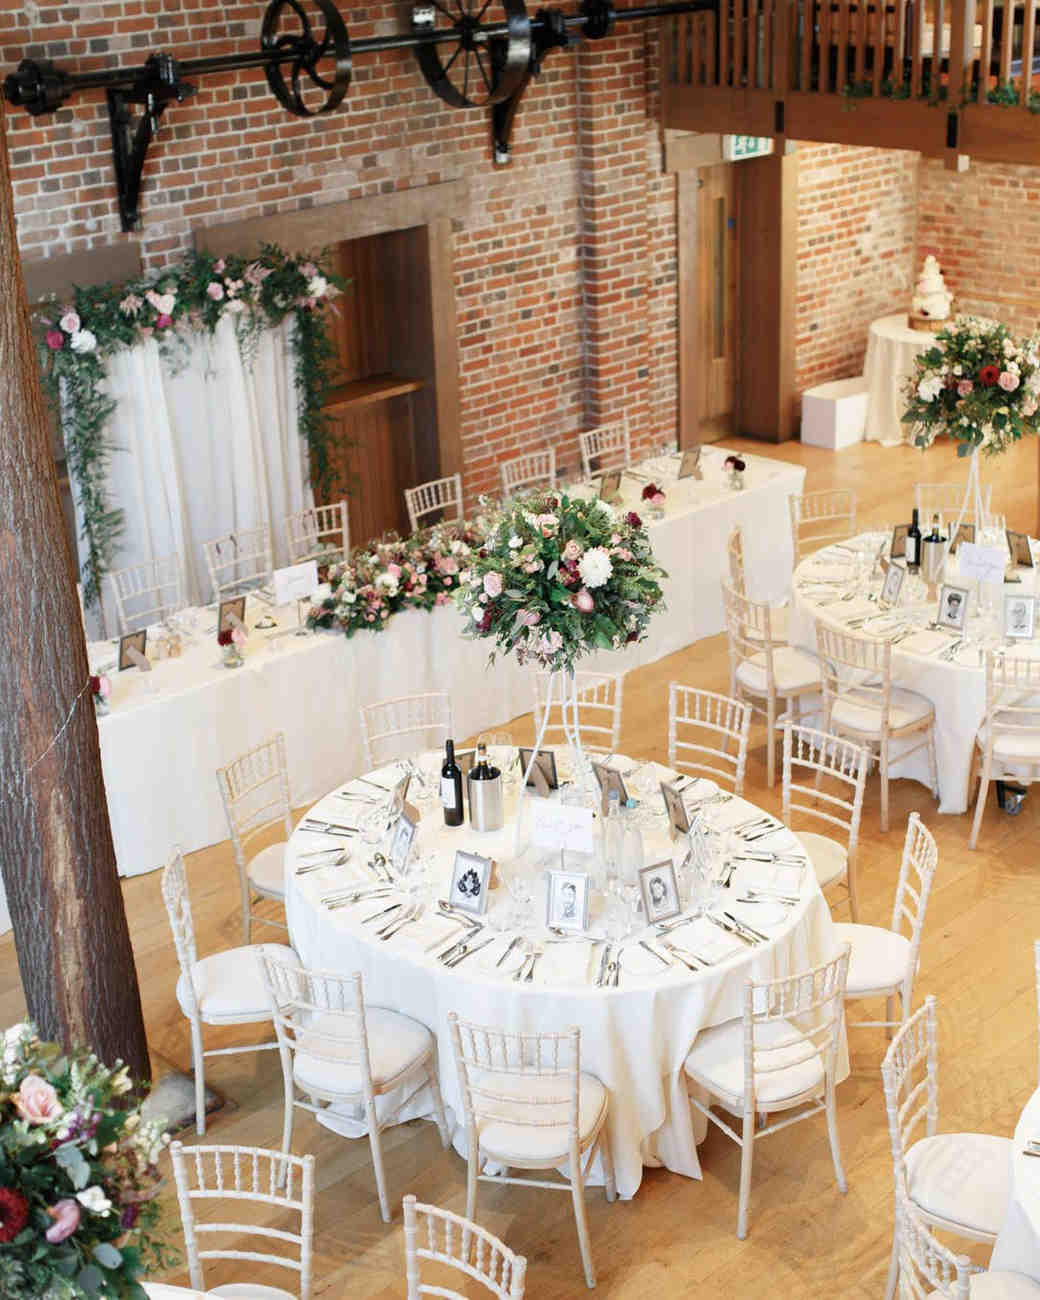 ryan thomas wedding reception wooden and brick room from above